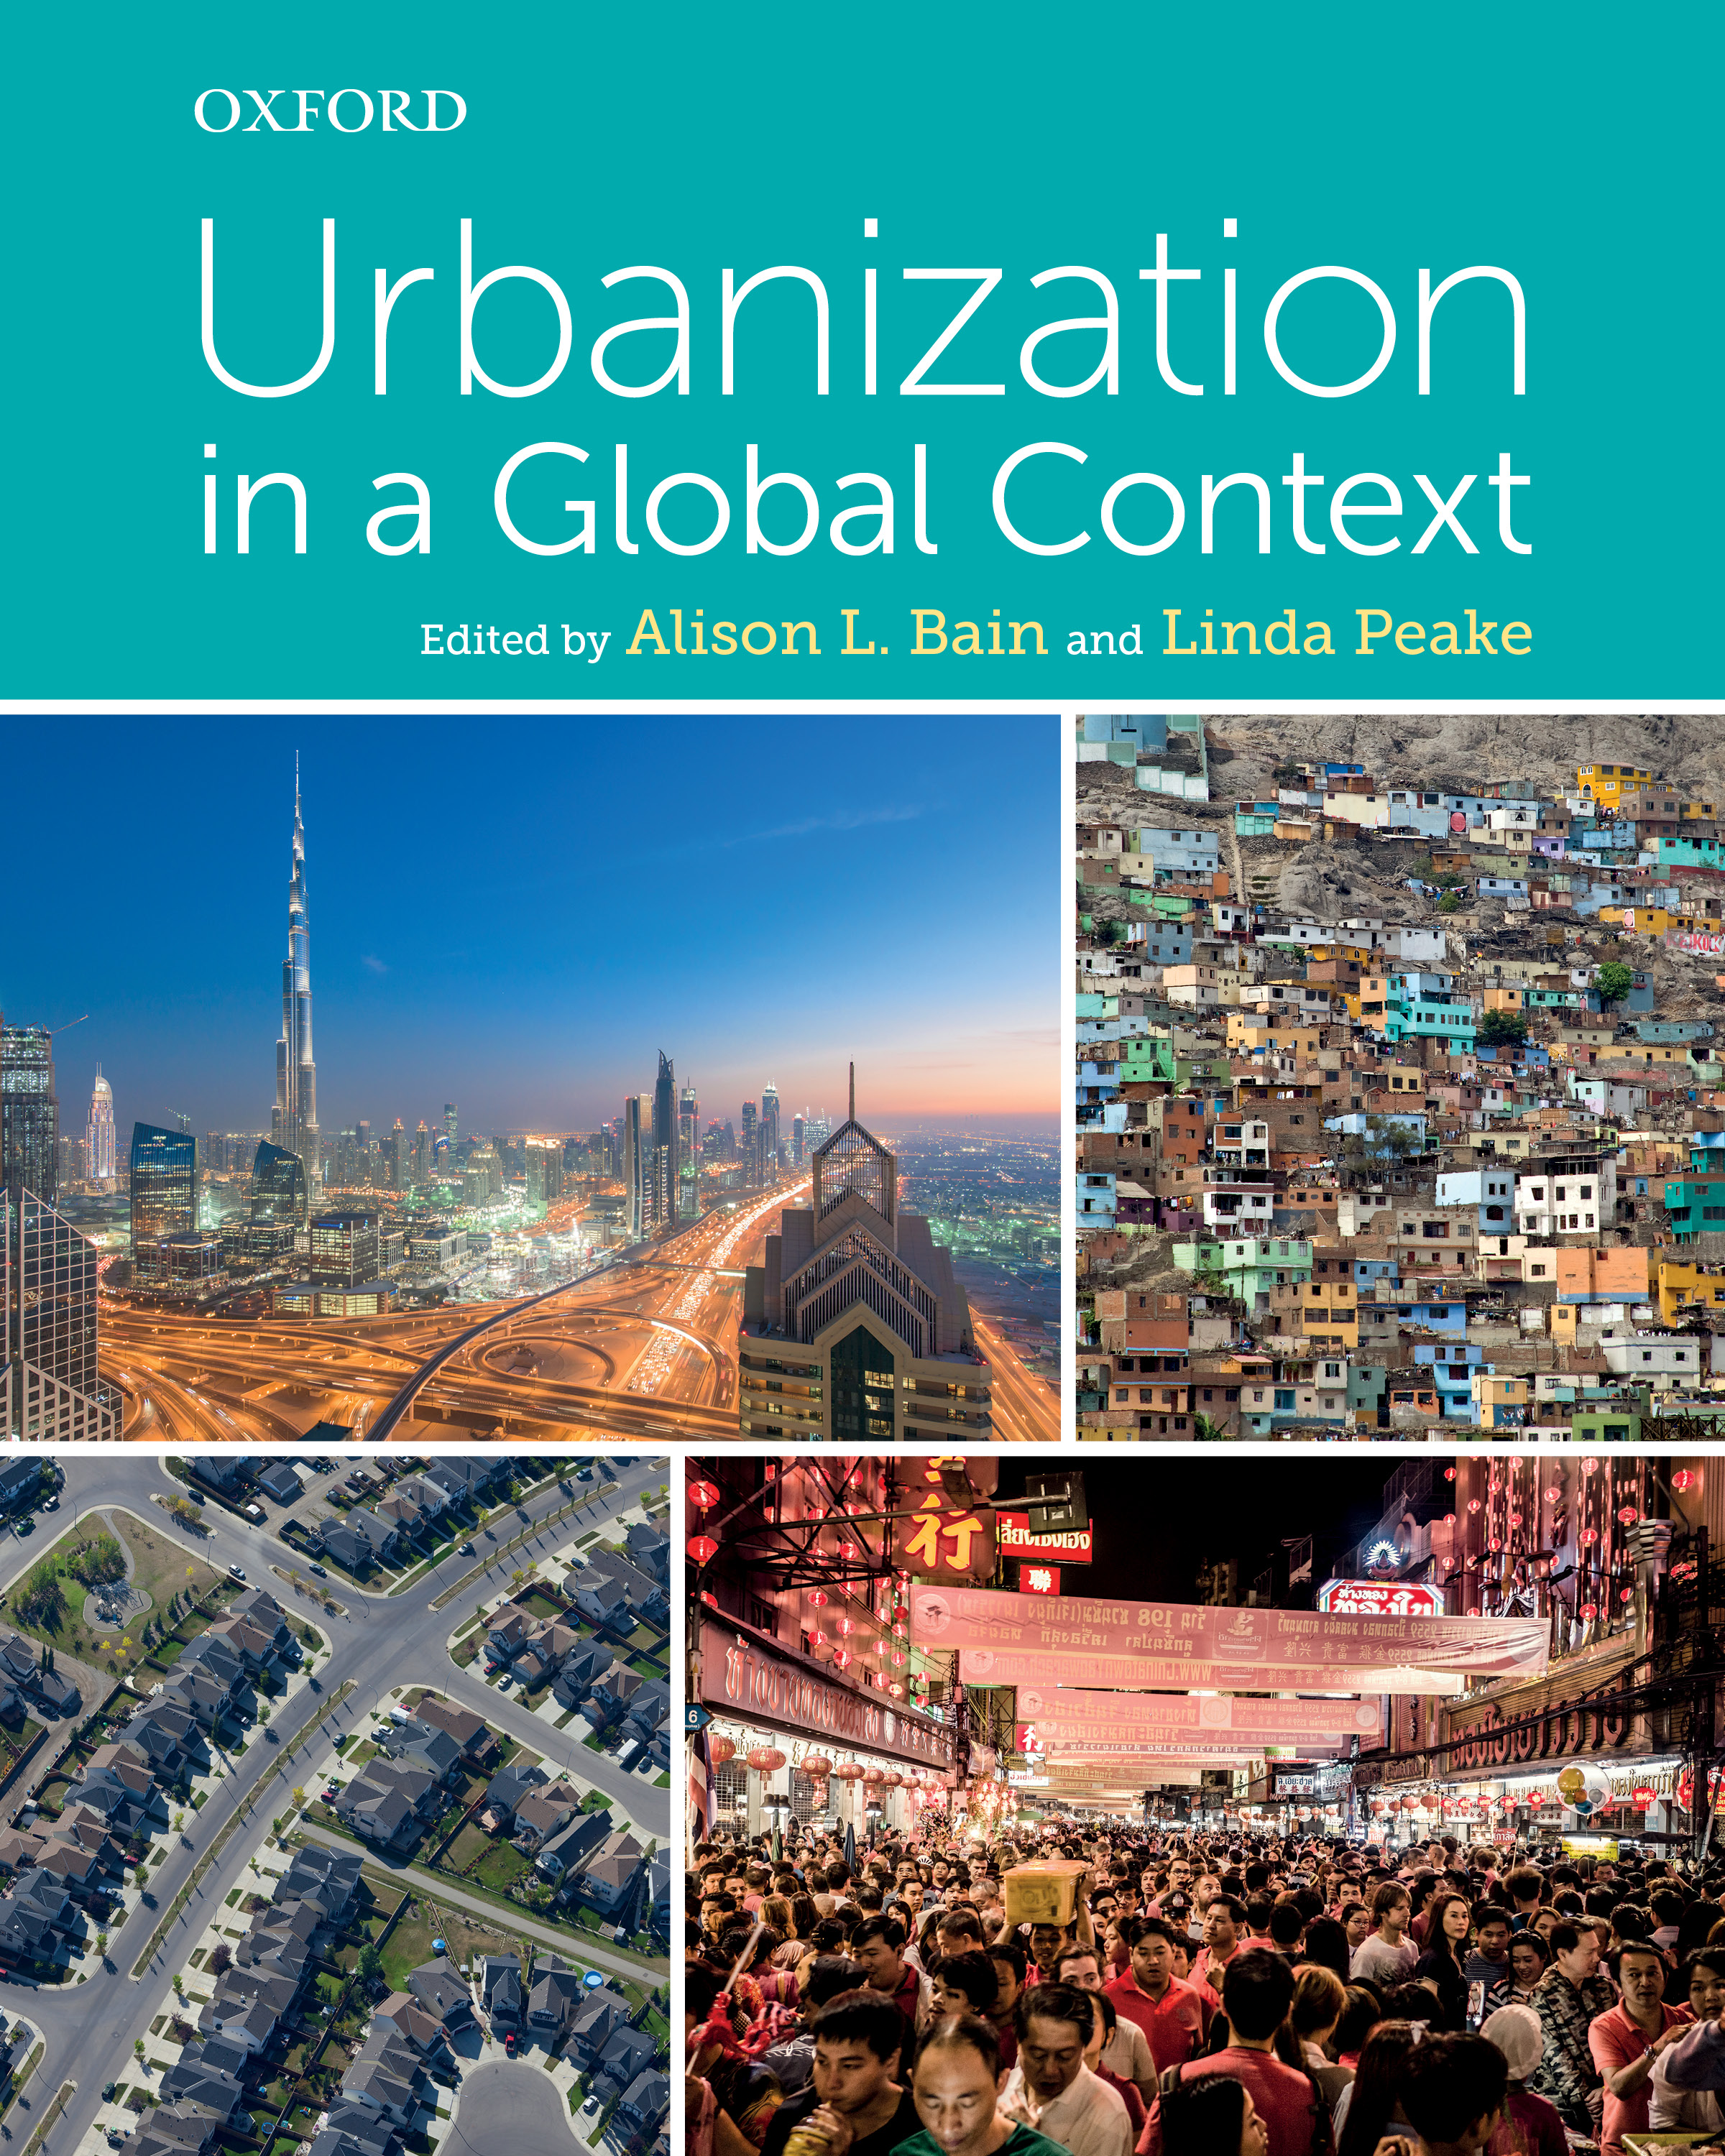 Urbanization in a Global Context Instructor Resources